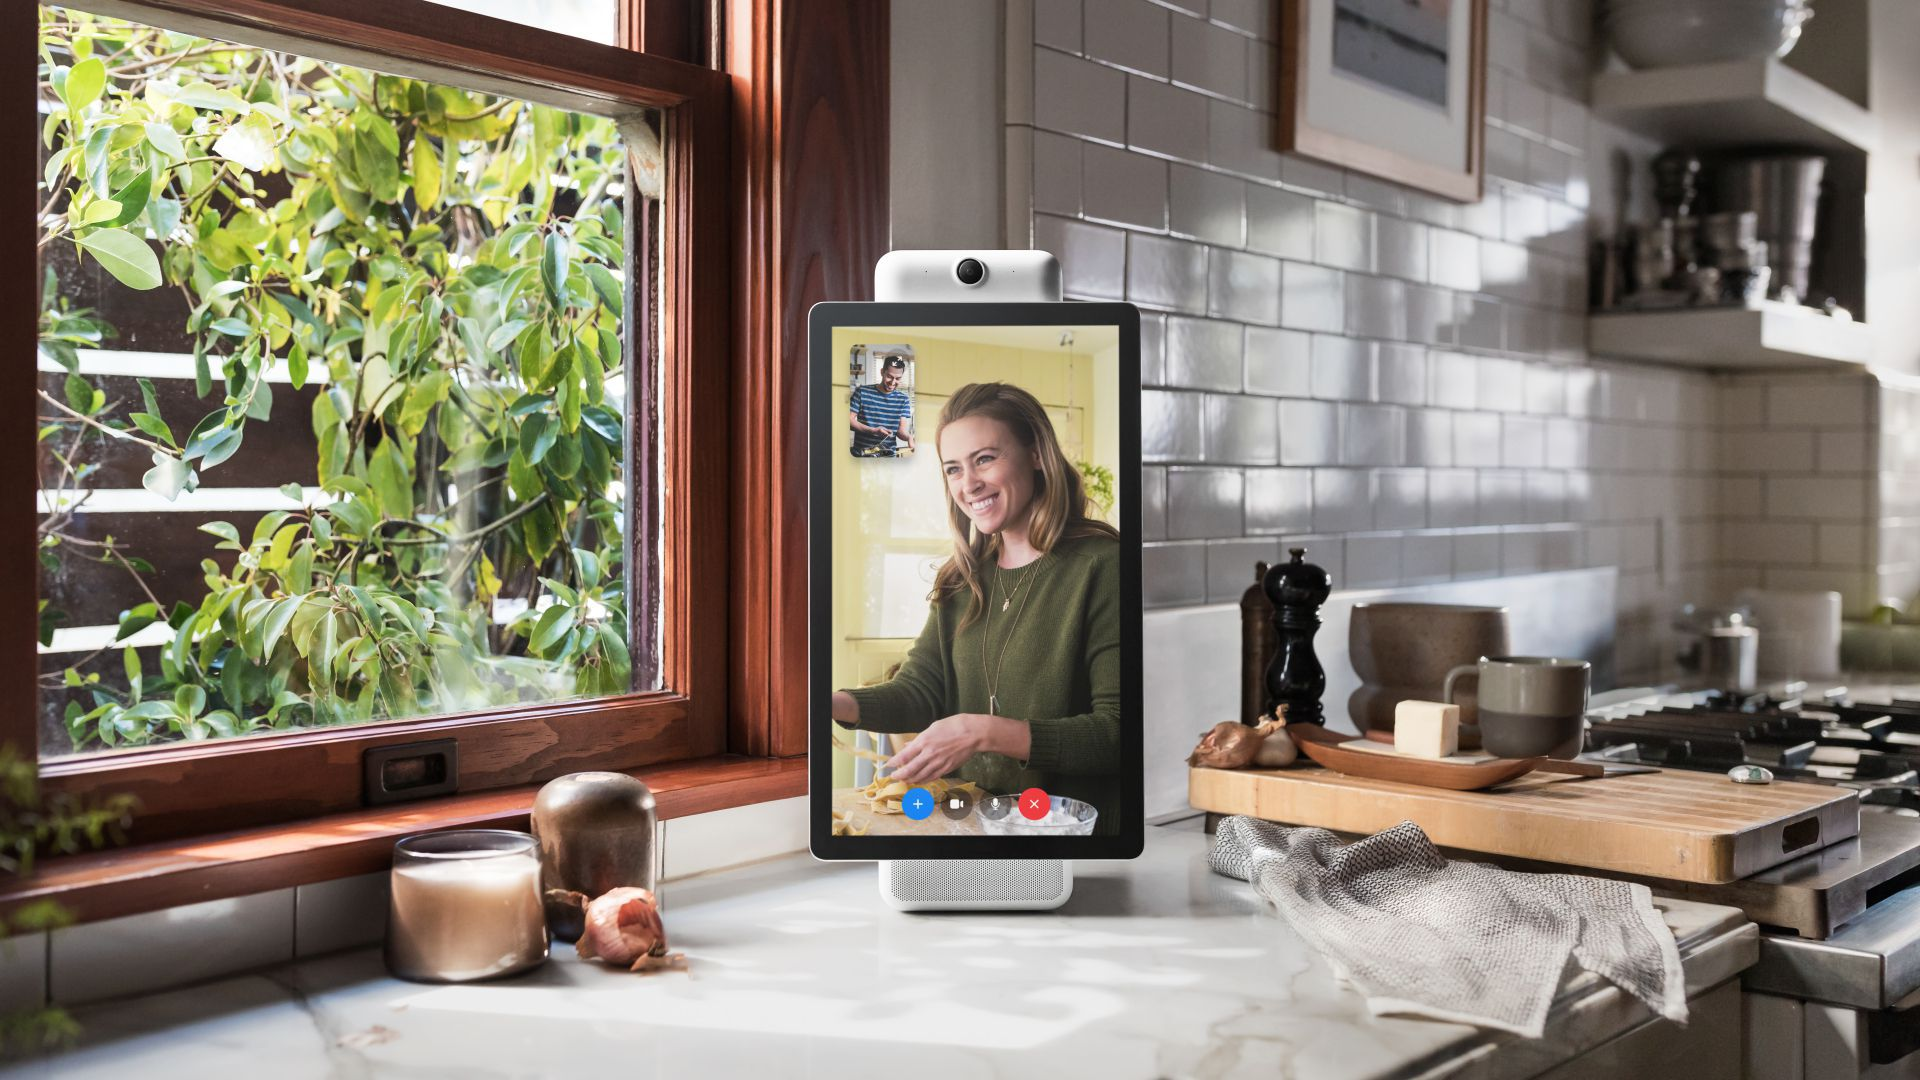 Facebook's Portal video chat device.